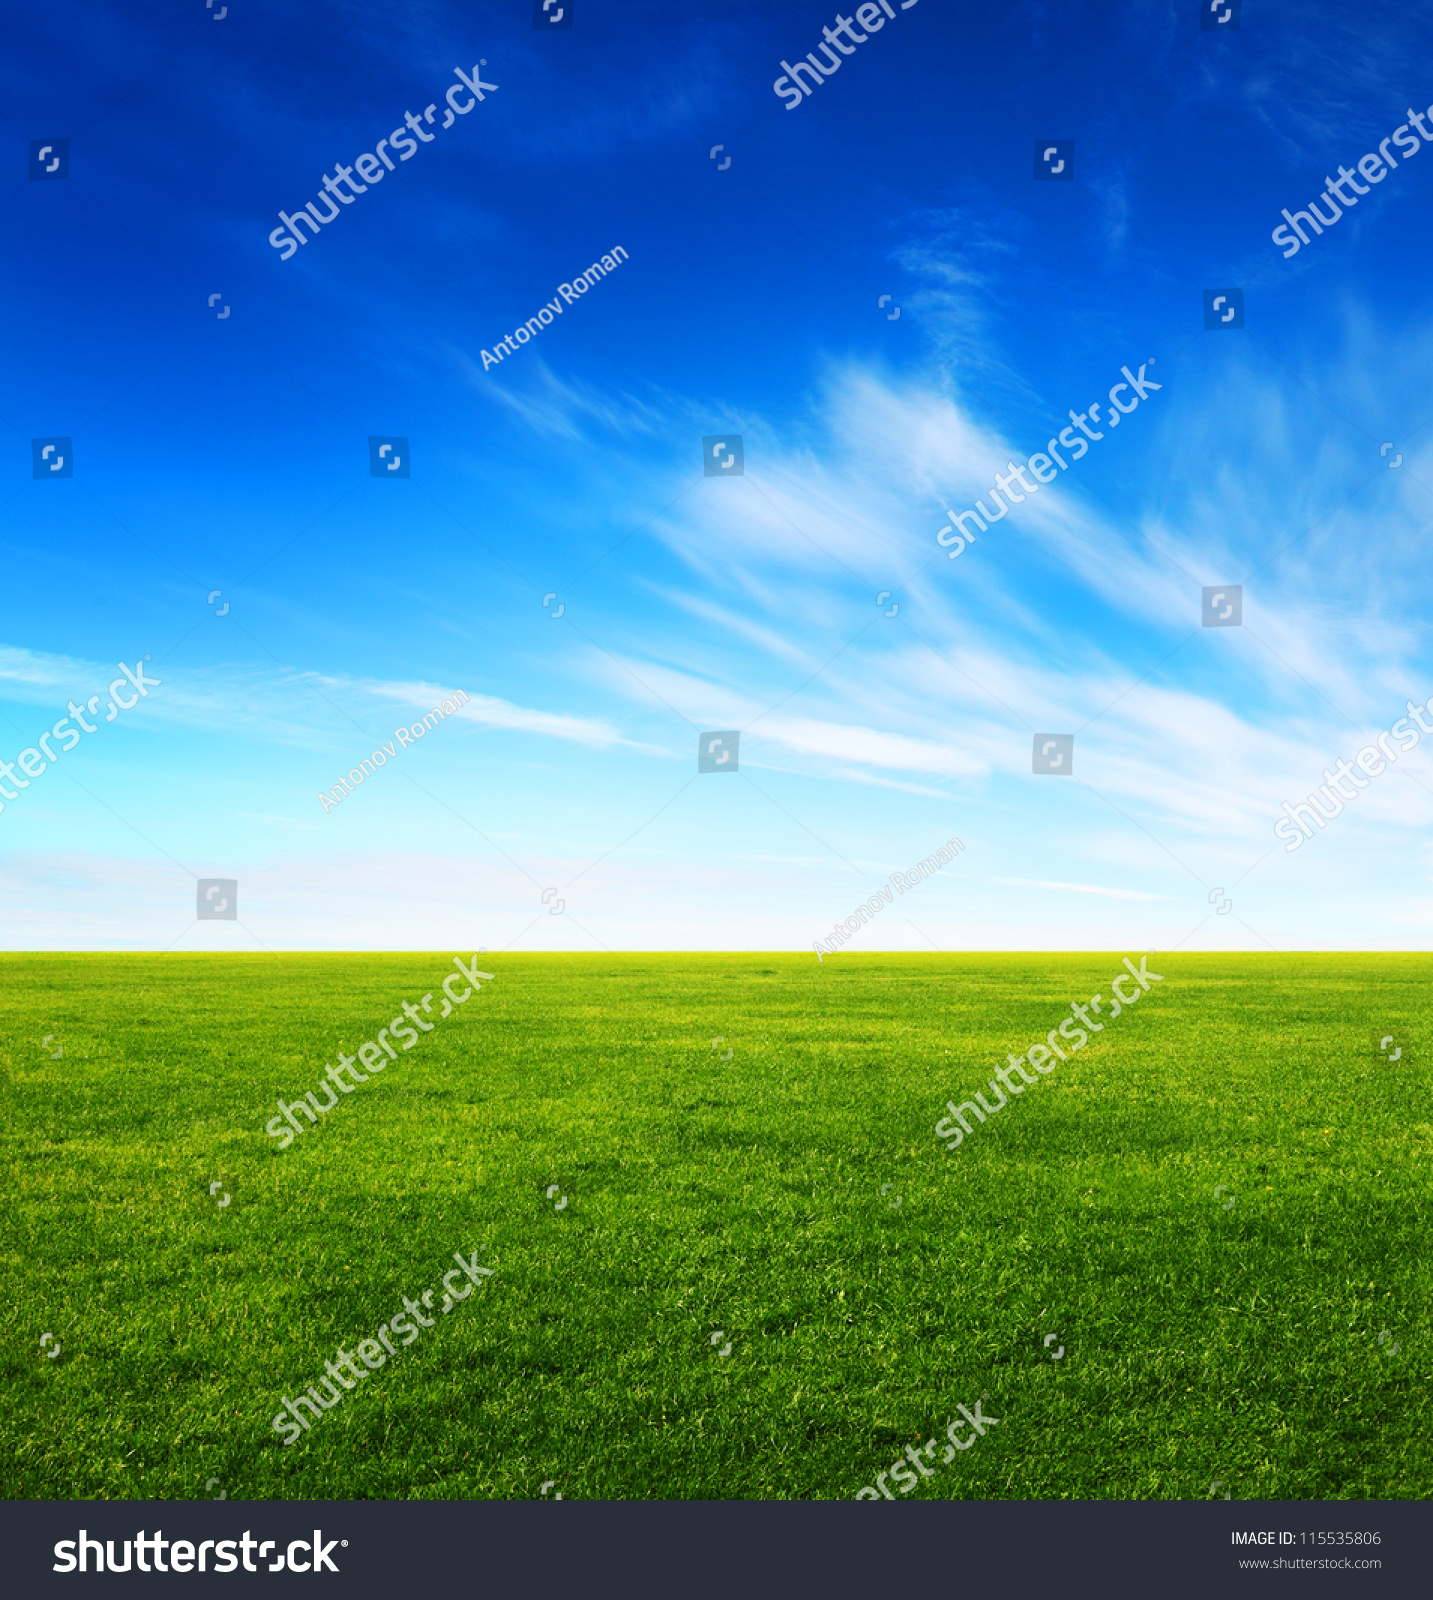 image green grass field bright blue stock photo (royalty free